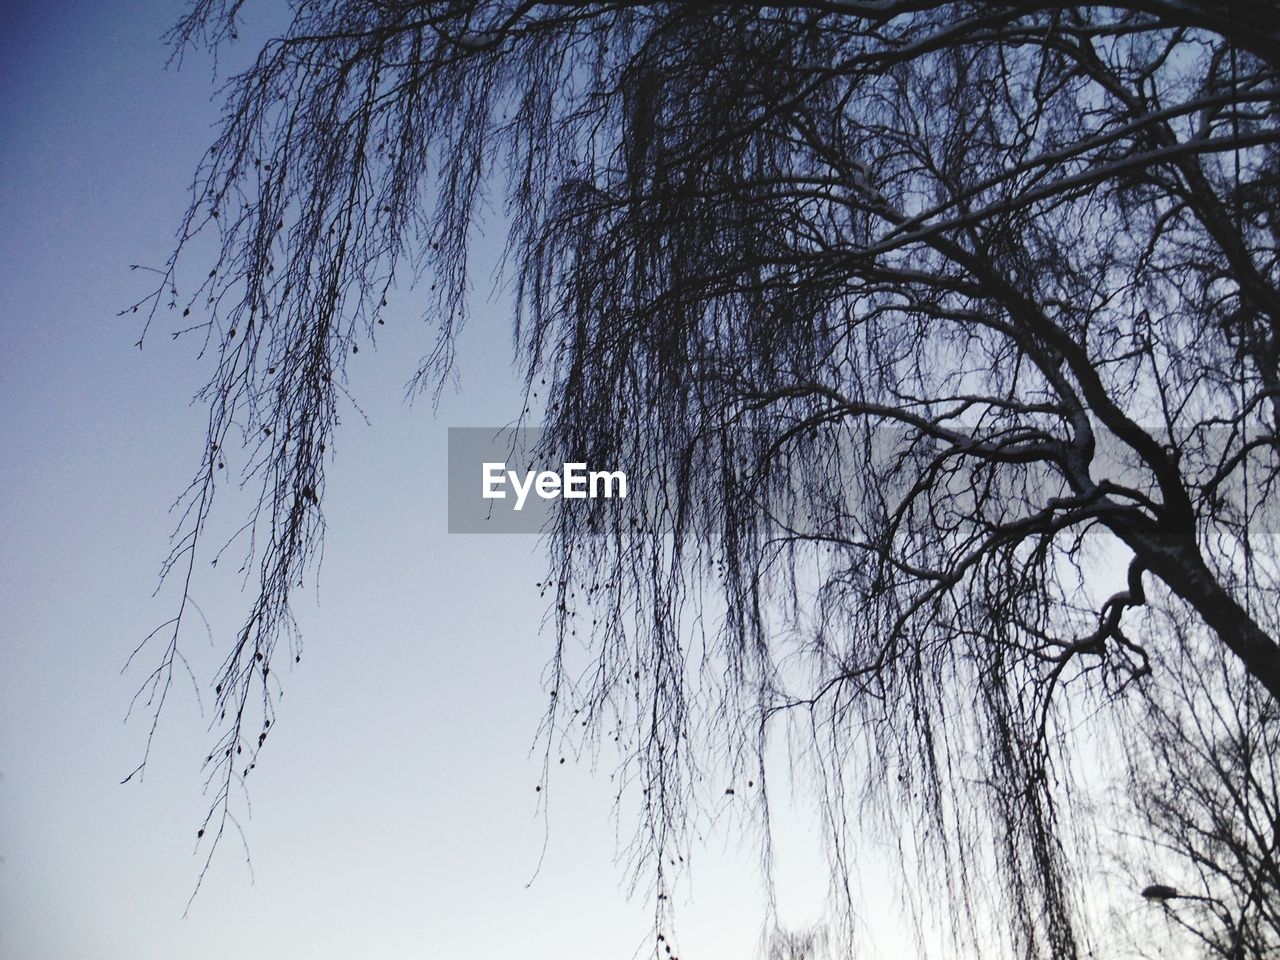 low angle view, nature, beauty in nature, no people, tranquility, outdoors, tree, clear sky, branch, sky, day, bare tree